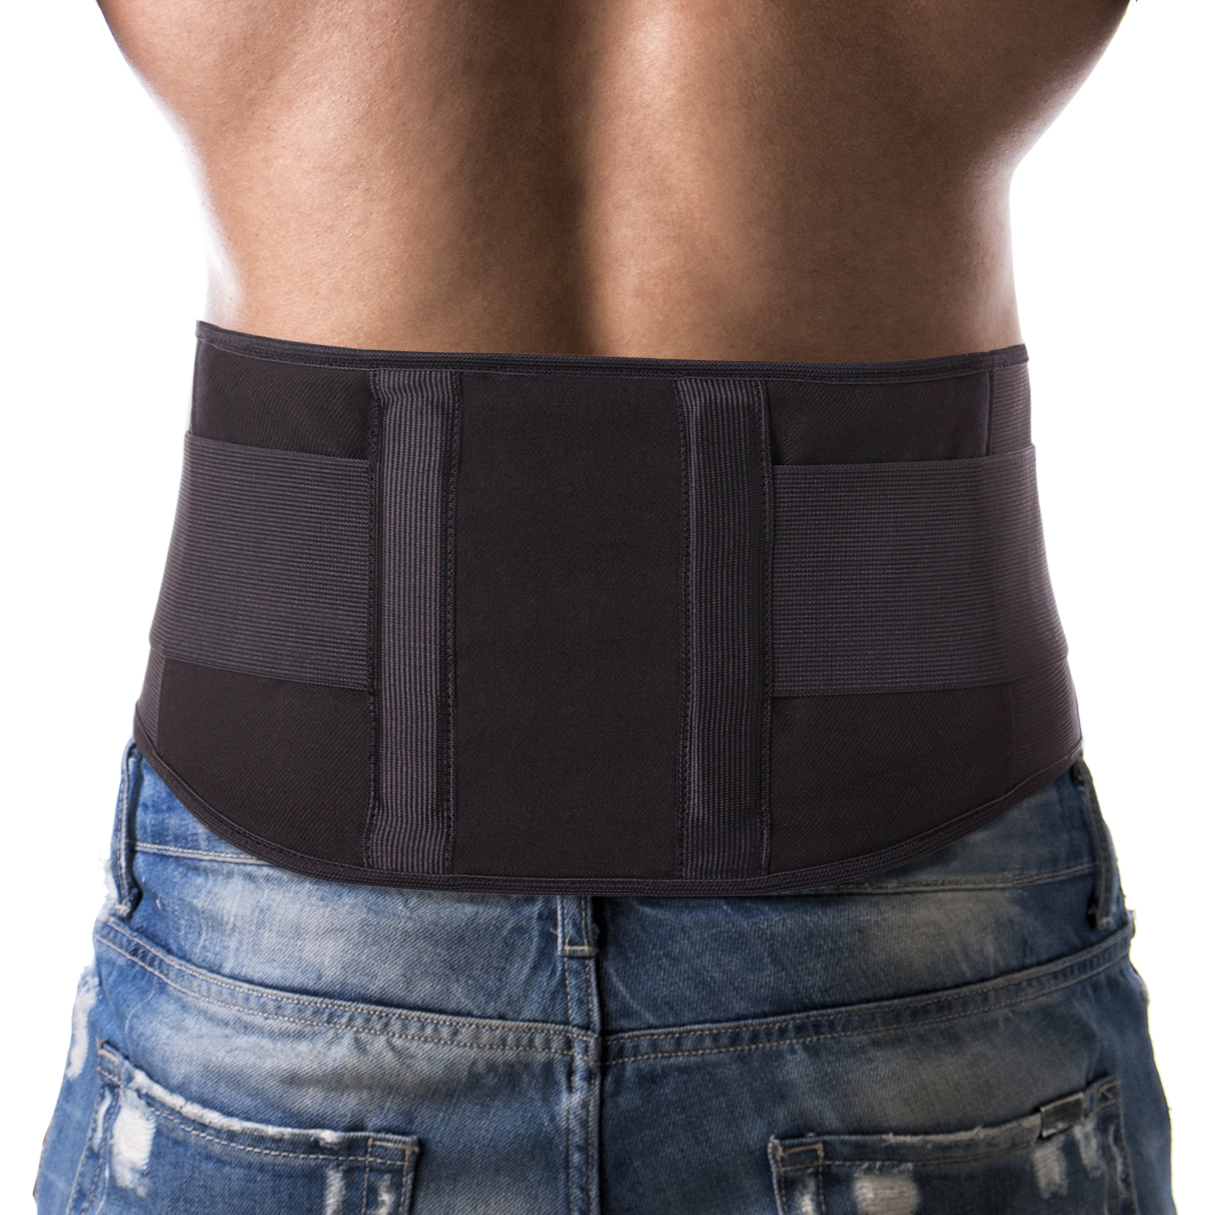 Light Lumbar Lower Back Brace Support Belt / Pain Relief and Comfort Posture